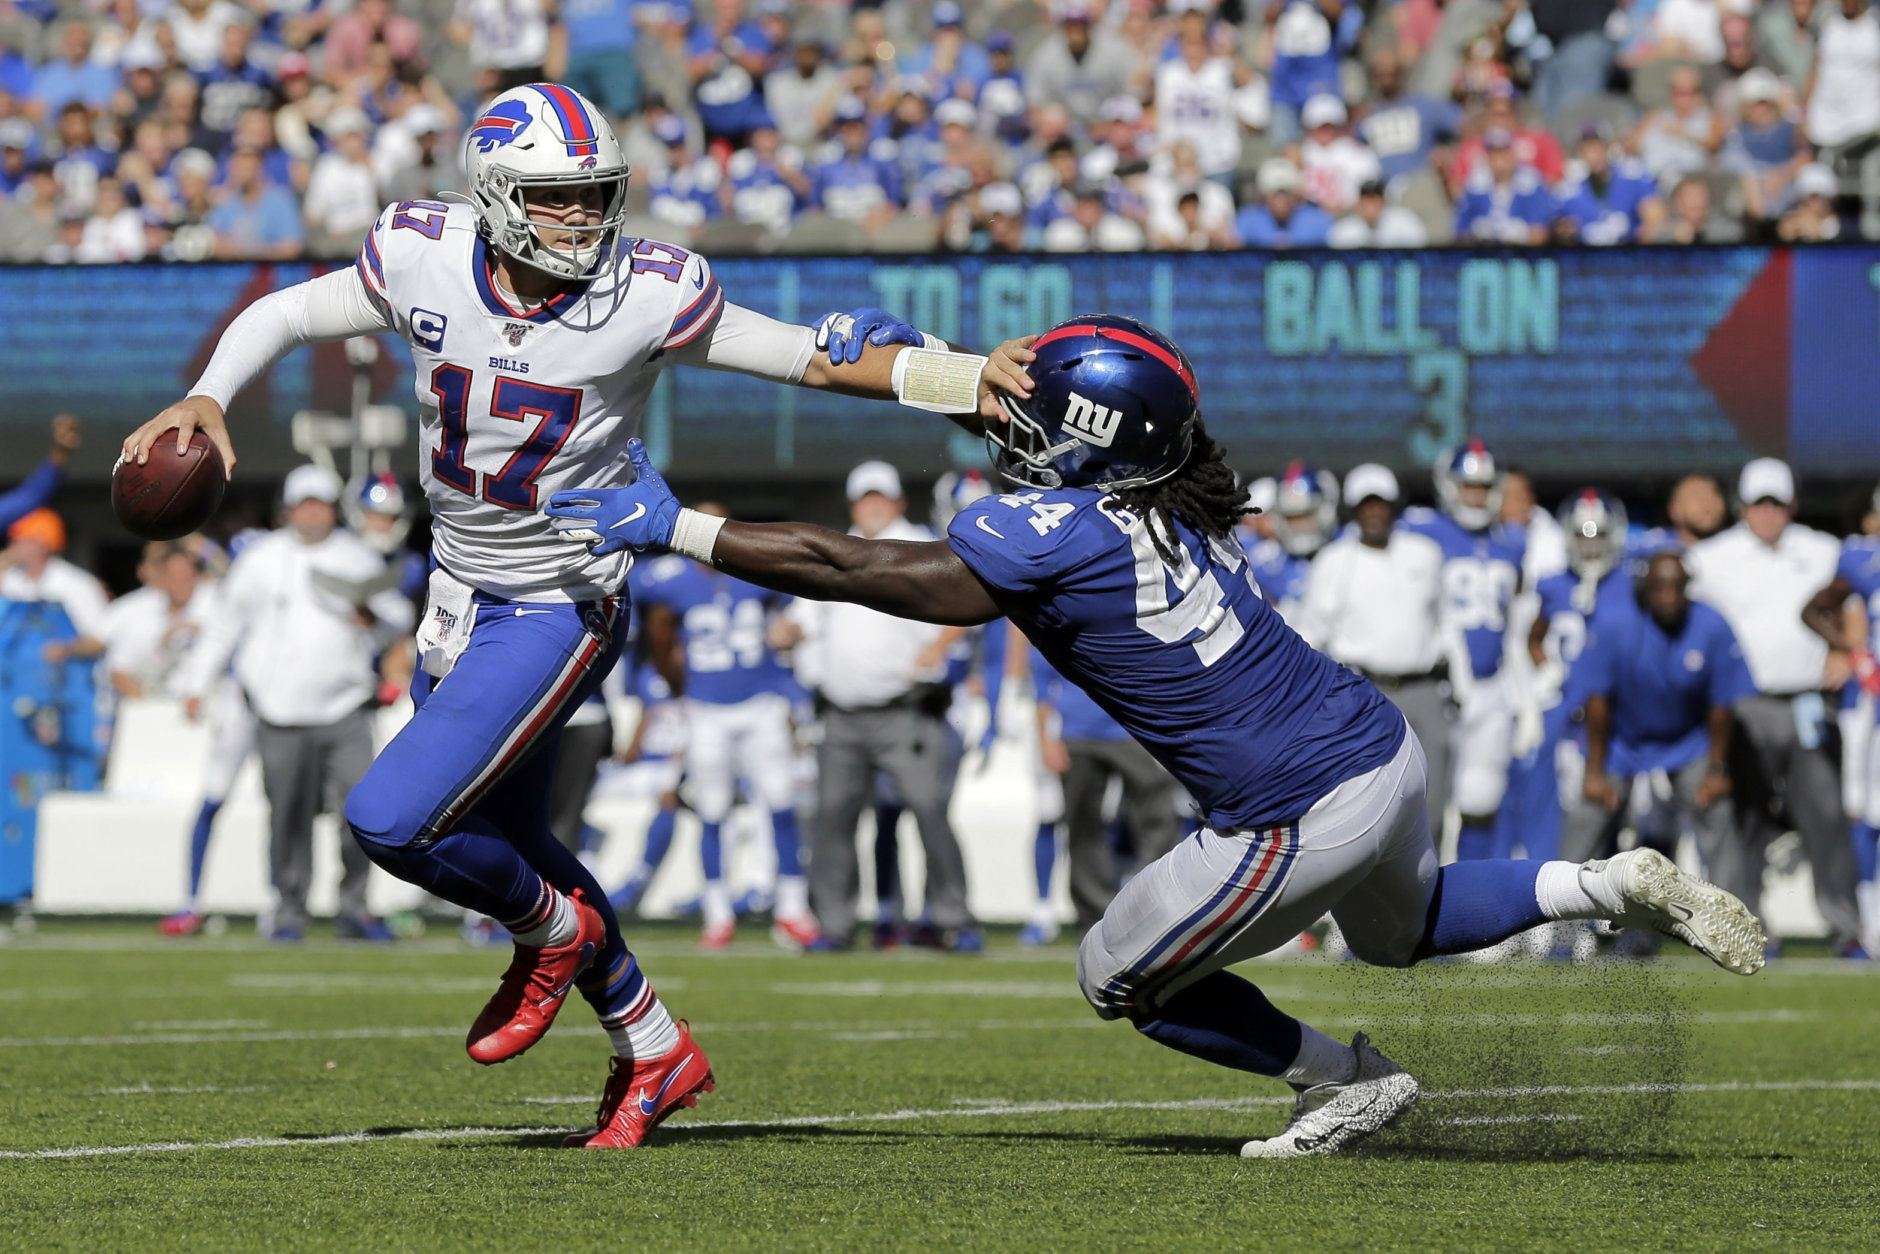 "<p><b><i>Bills 28</i></b><br /> <b><i>Giants 14</i></b></p> <p>Josh Allen completed a two-game sweep of the Meadowlands and <a href=""https://buffalonews.com/2019/09/15/buffalo-bills-josh-allen-new-york-jets-new-york-giants-met-life-stadium/"">claimed sole ownership of the state of New York</a> — all on a day when the Bills defense literally <a href=""https://www.nj.com/giants/2019/09/bills-defense-admits-simple-plan-to-beat-giants-make-eli-manning-throw.html"">called Eli Manning a liability</a>. It doesn&#8217;t exactly absolve <a href=""http://www.nfl.com/videos/nfl-videos/0ap2000000213456/Super-Bowl-XXV-Scott-Norwood-misses-field-goal-wide-right"">Scott Norwood</a> of Wide Right, but Buffalo will take their first 2-0 start in five years.</p>"